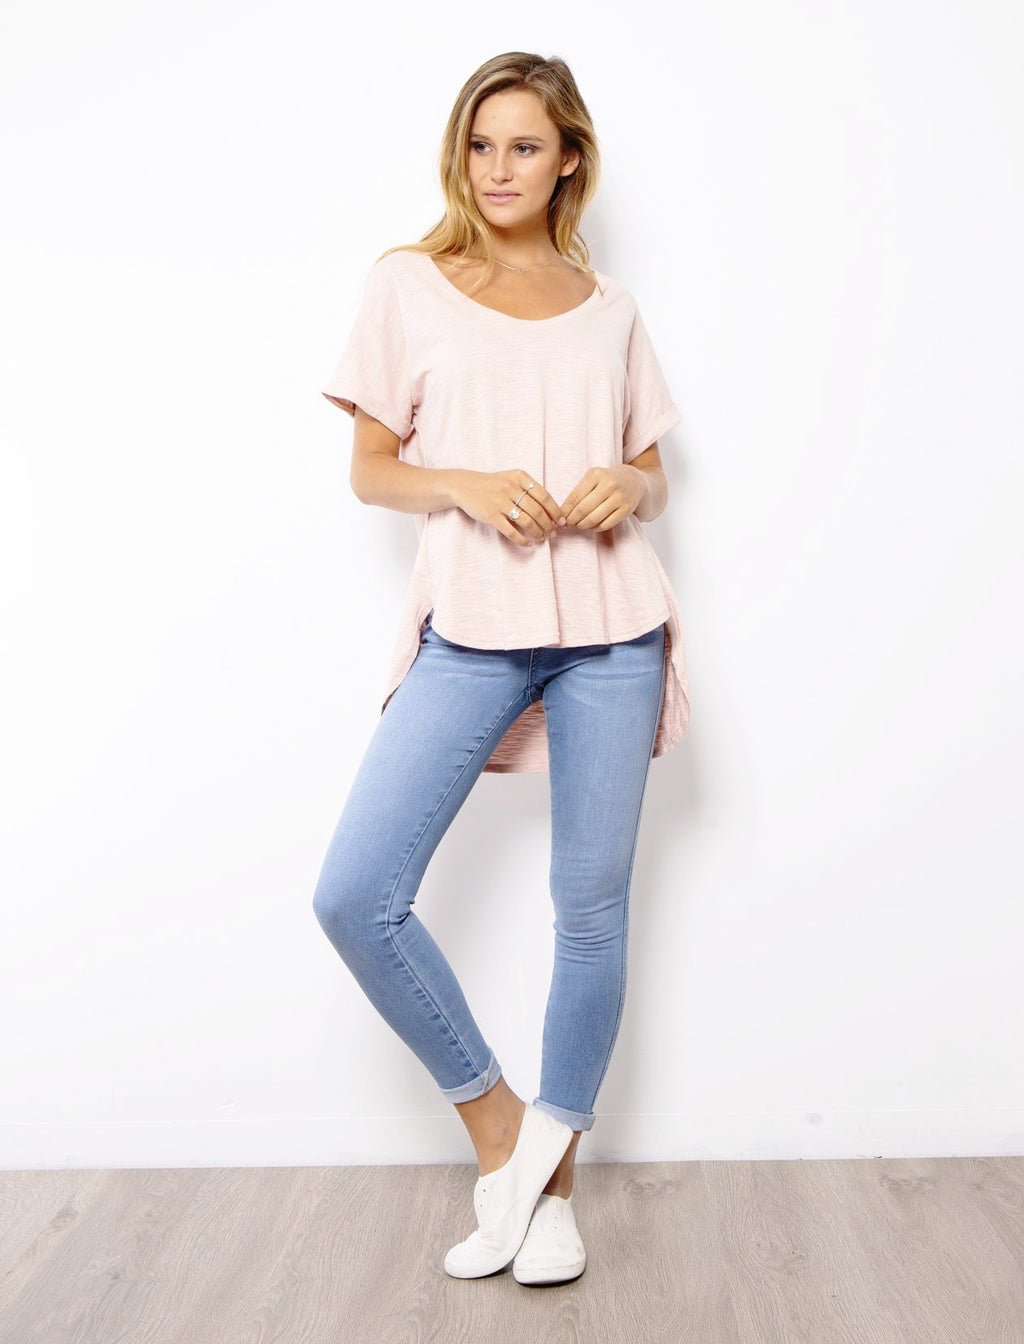 LUBI COTTON TEE - BLUSH - MARK DOWN MADNESS